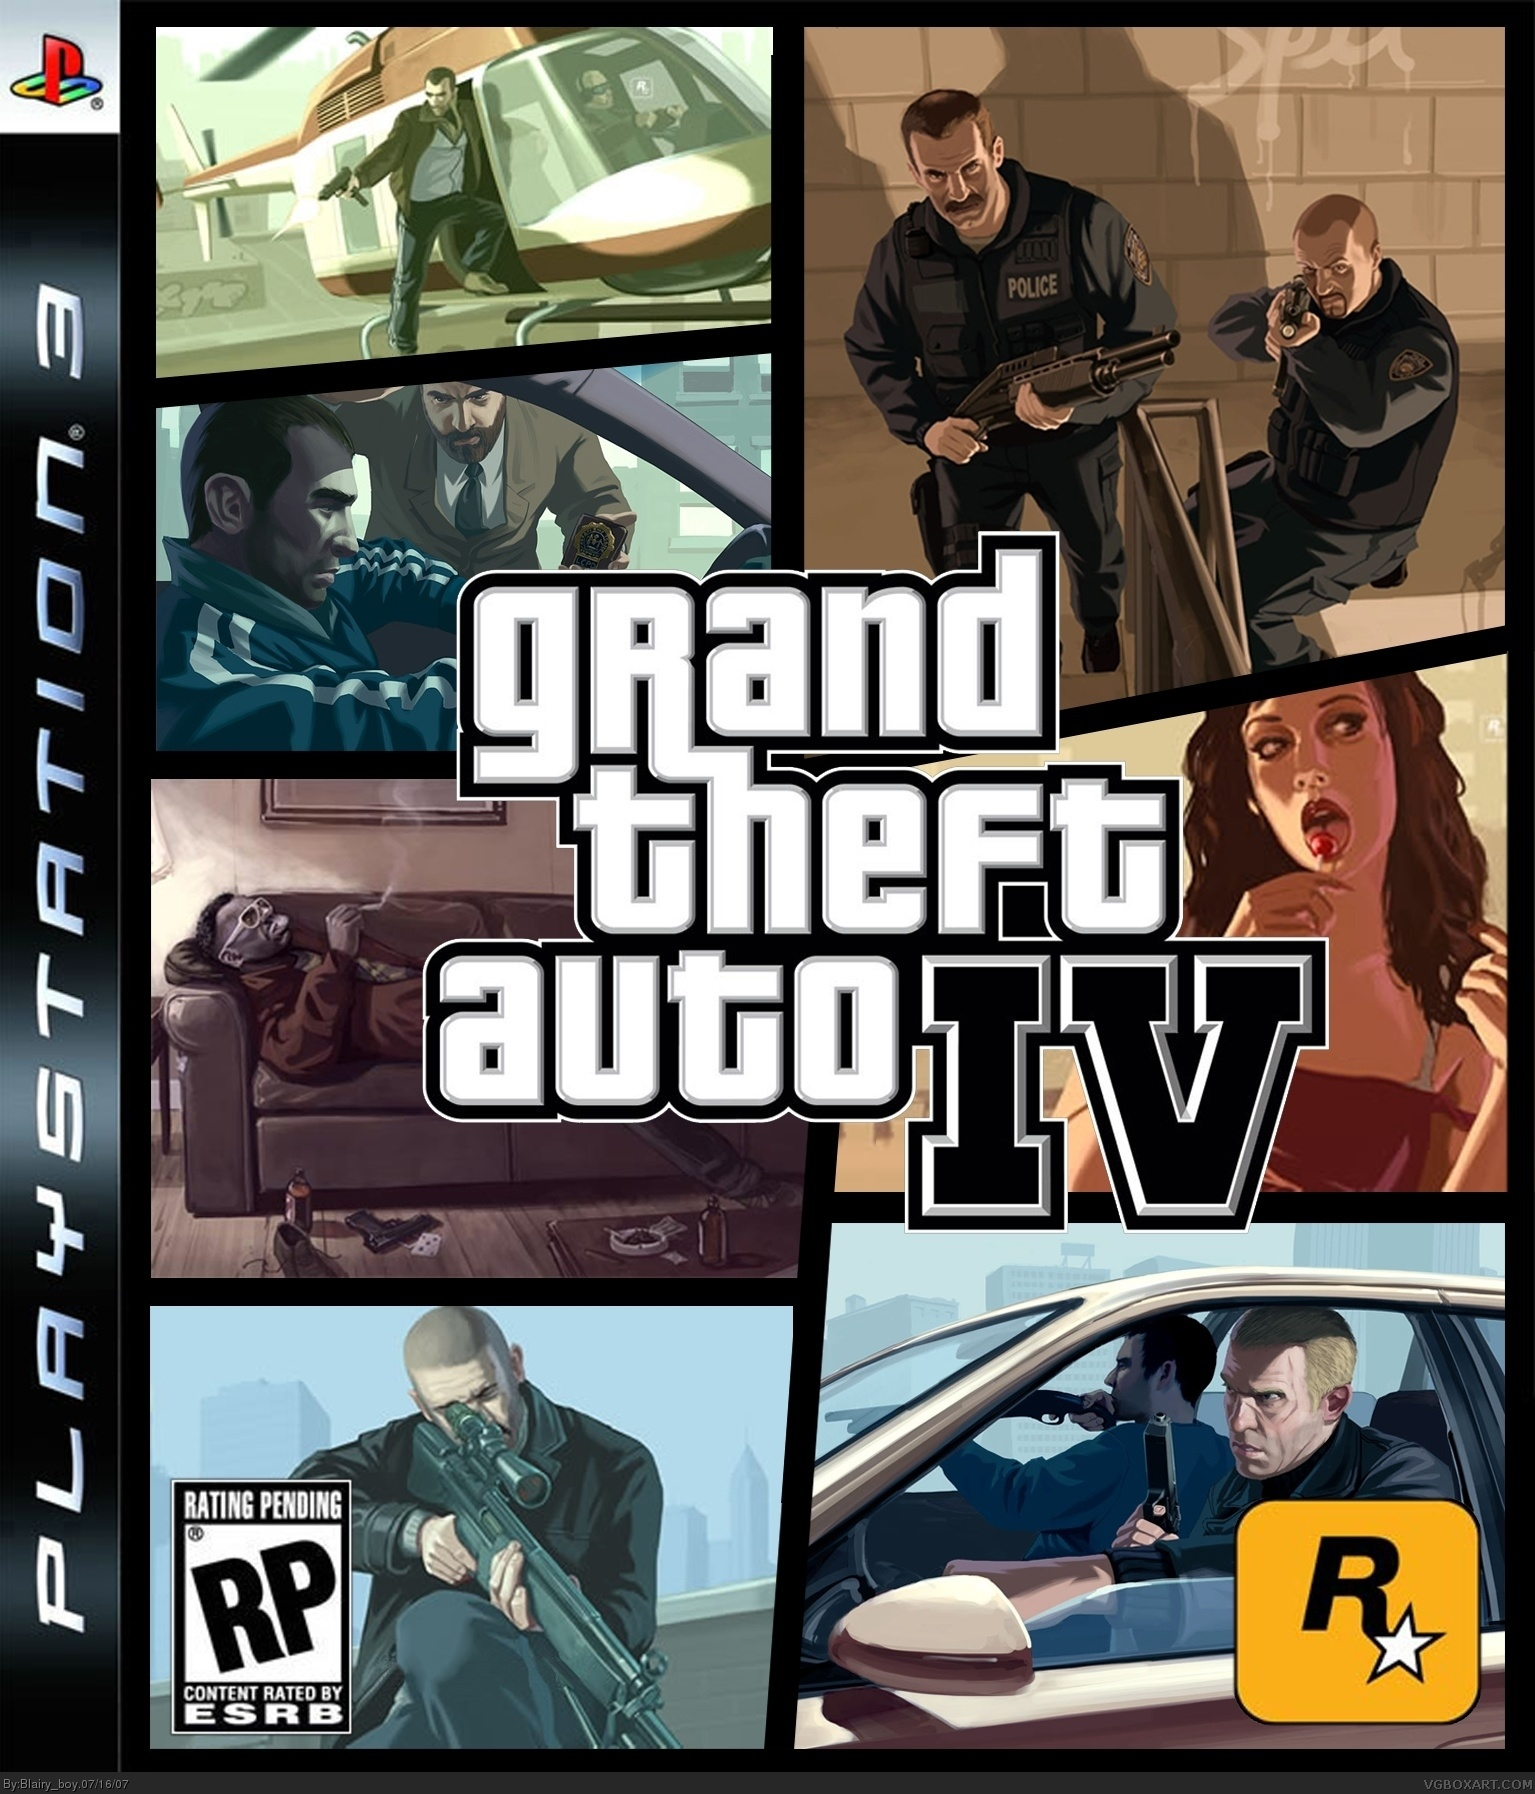 grand theft auto iv playstation 3 box art cover by blairy boy. Black Bedroom Furniture Sets. Home Design Ideas